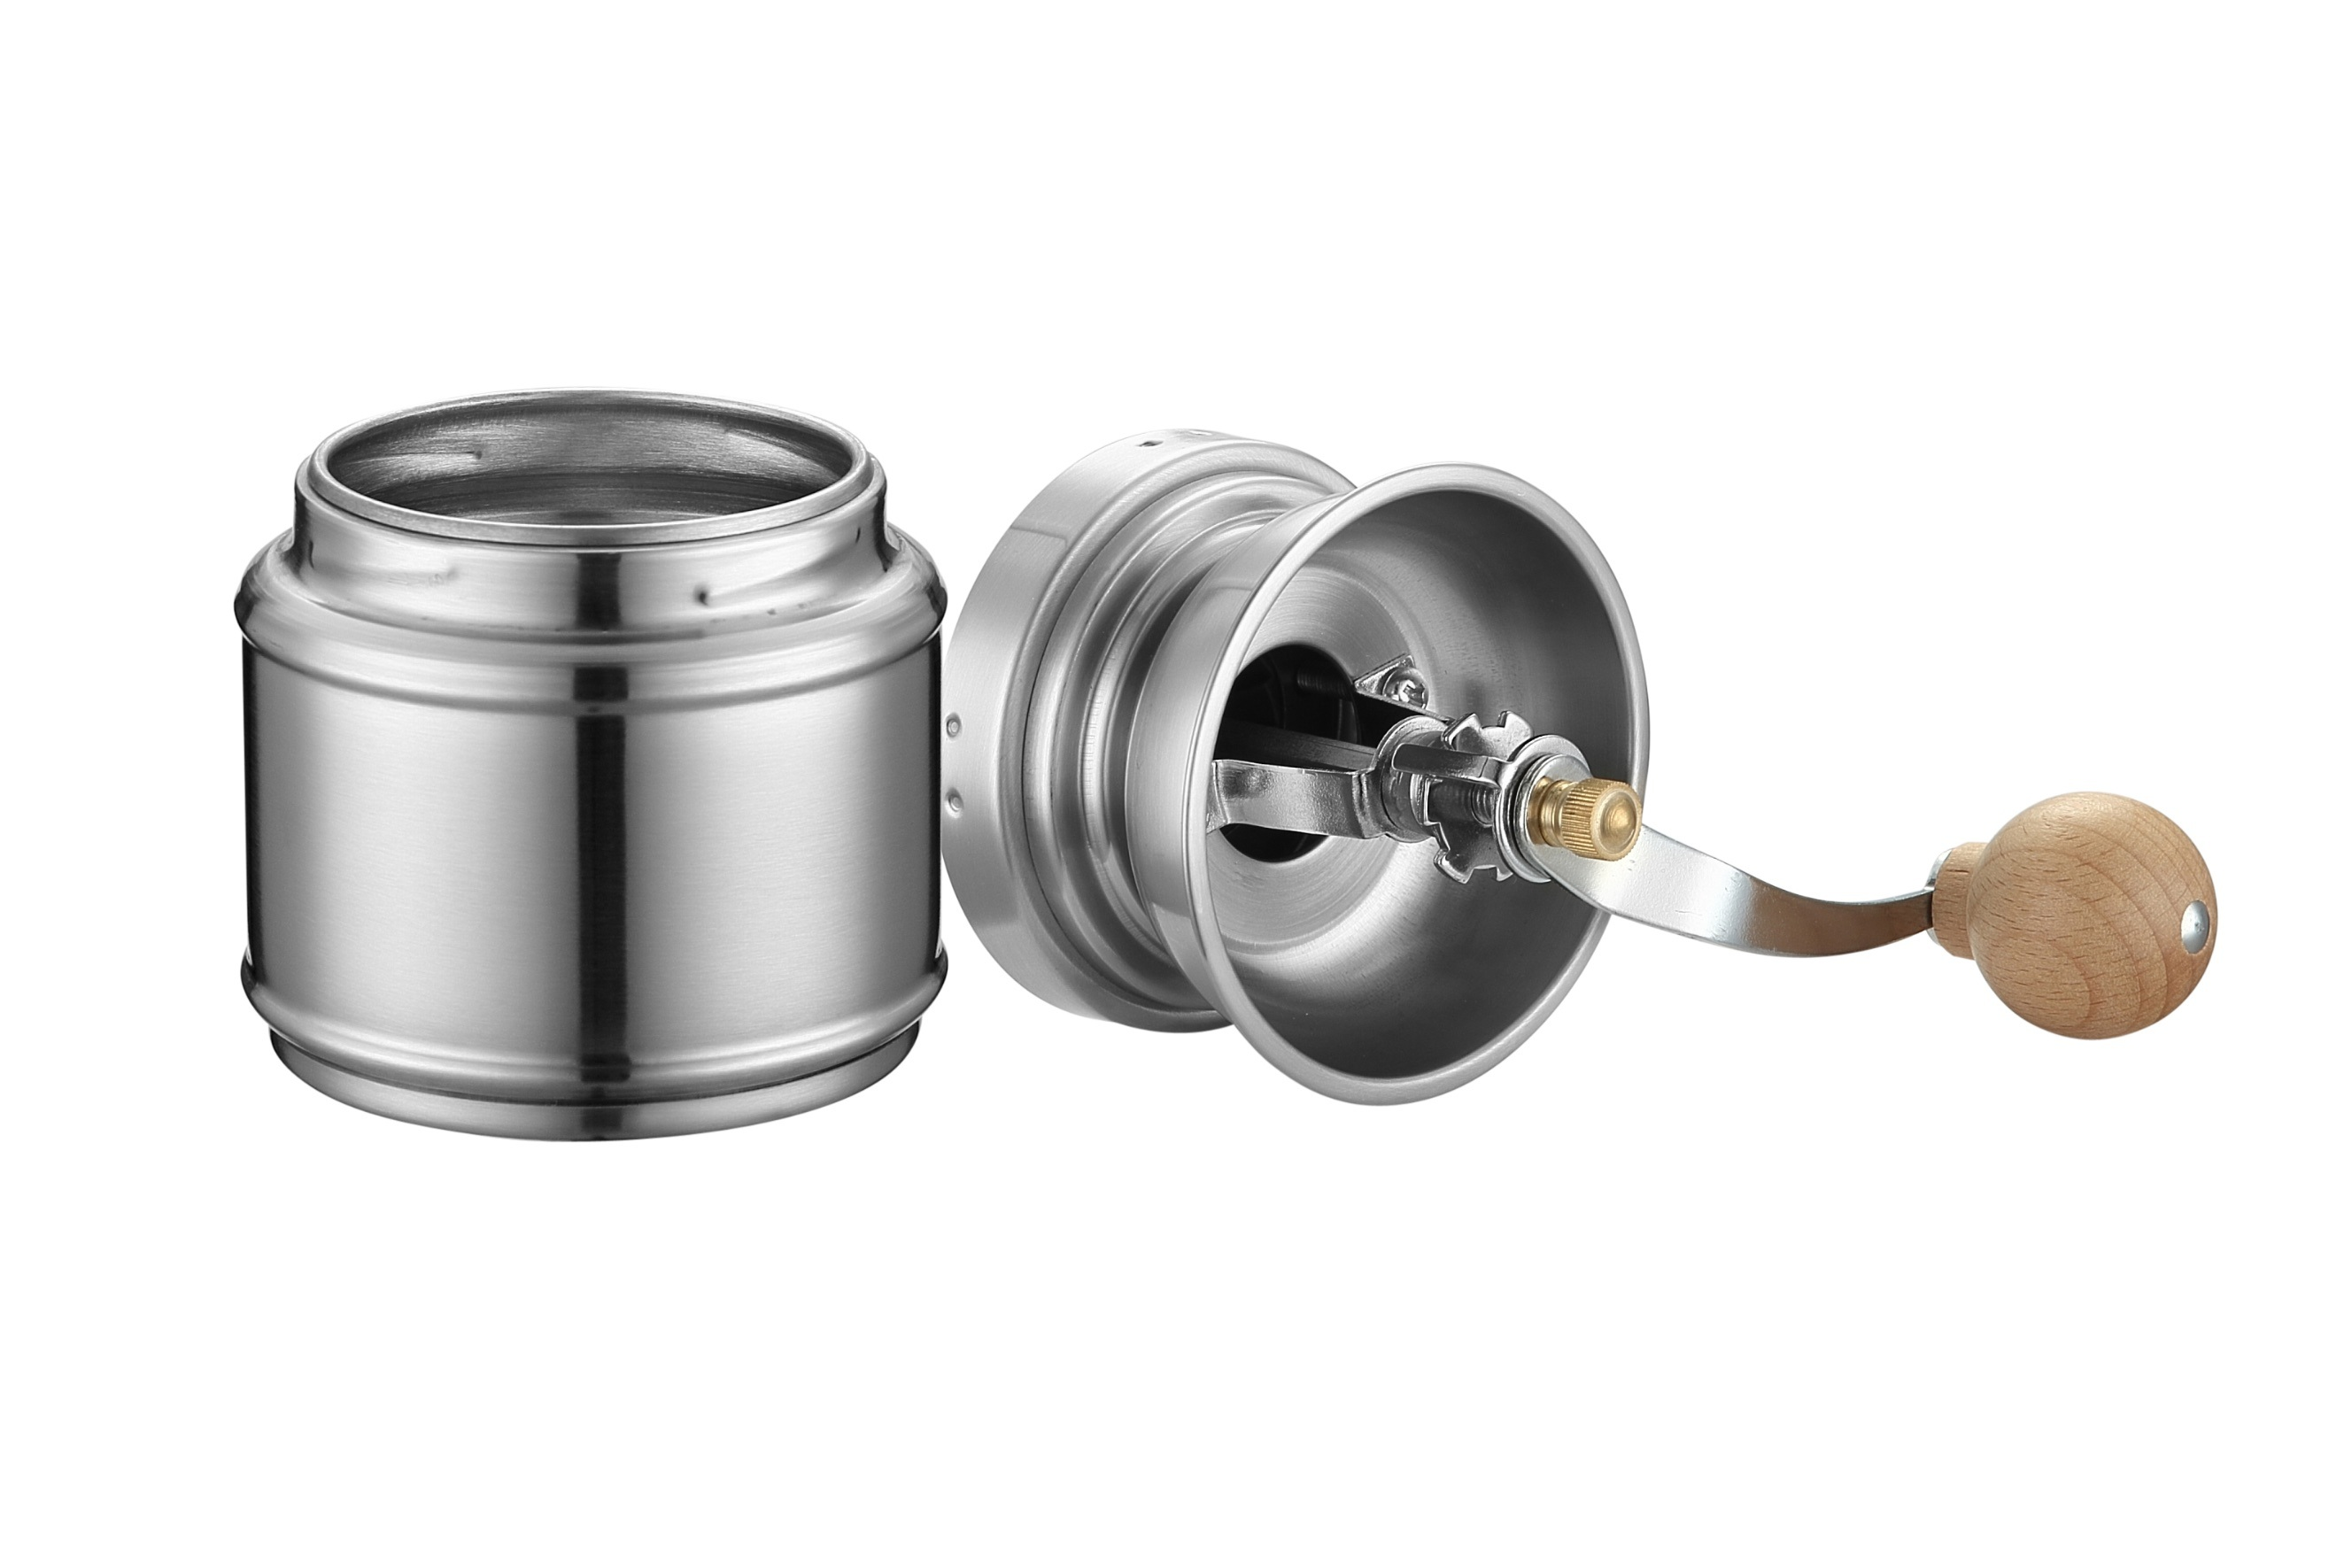 Japan Casual Product Stainless Steel Coffee Grinder